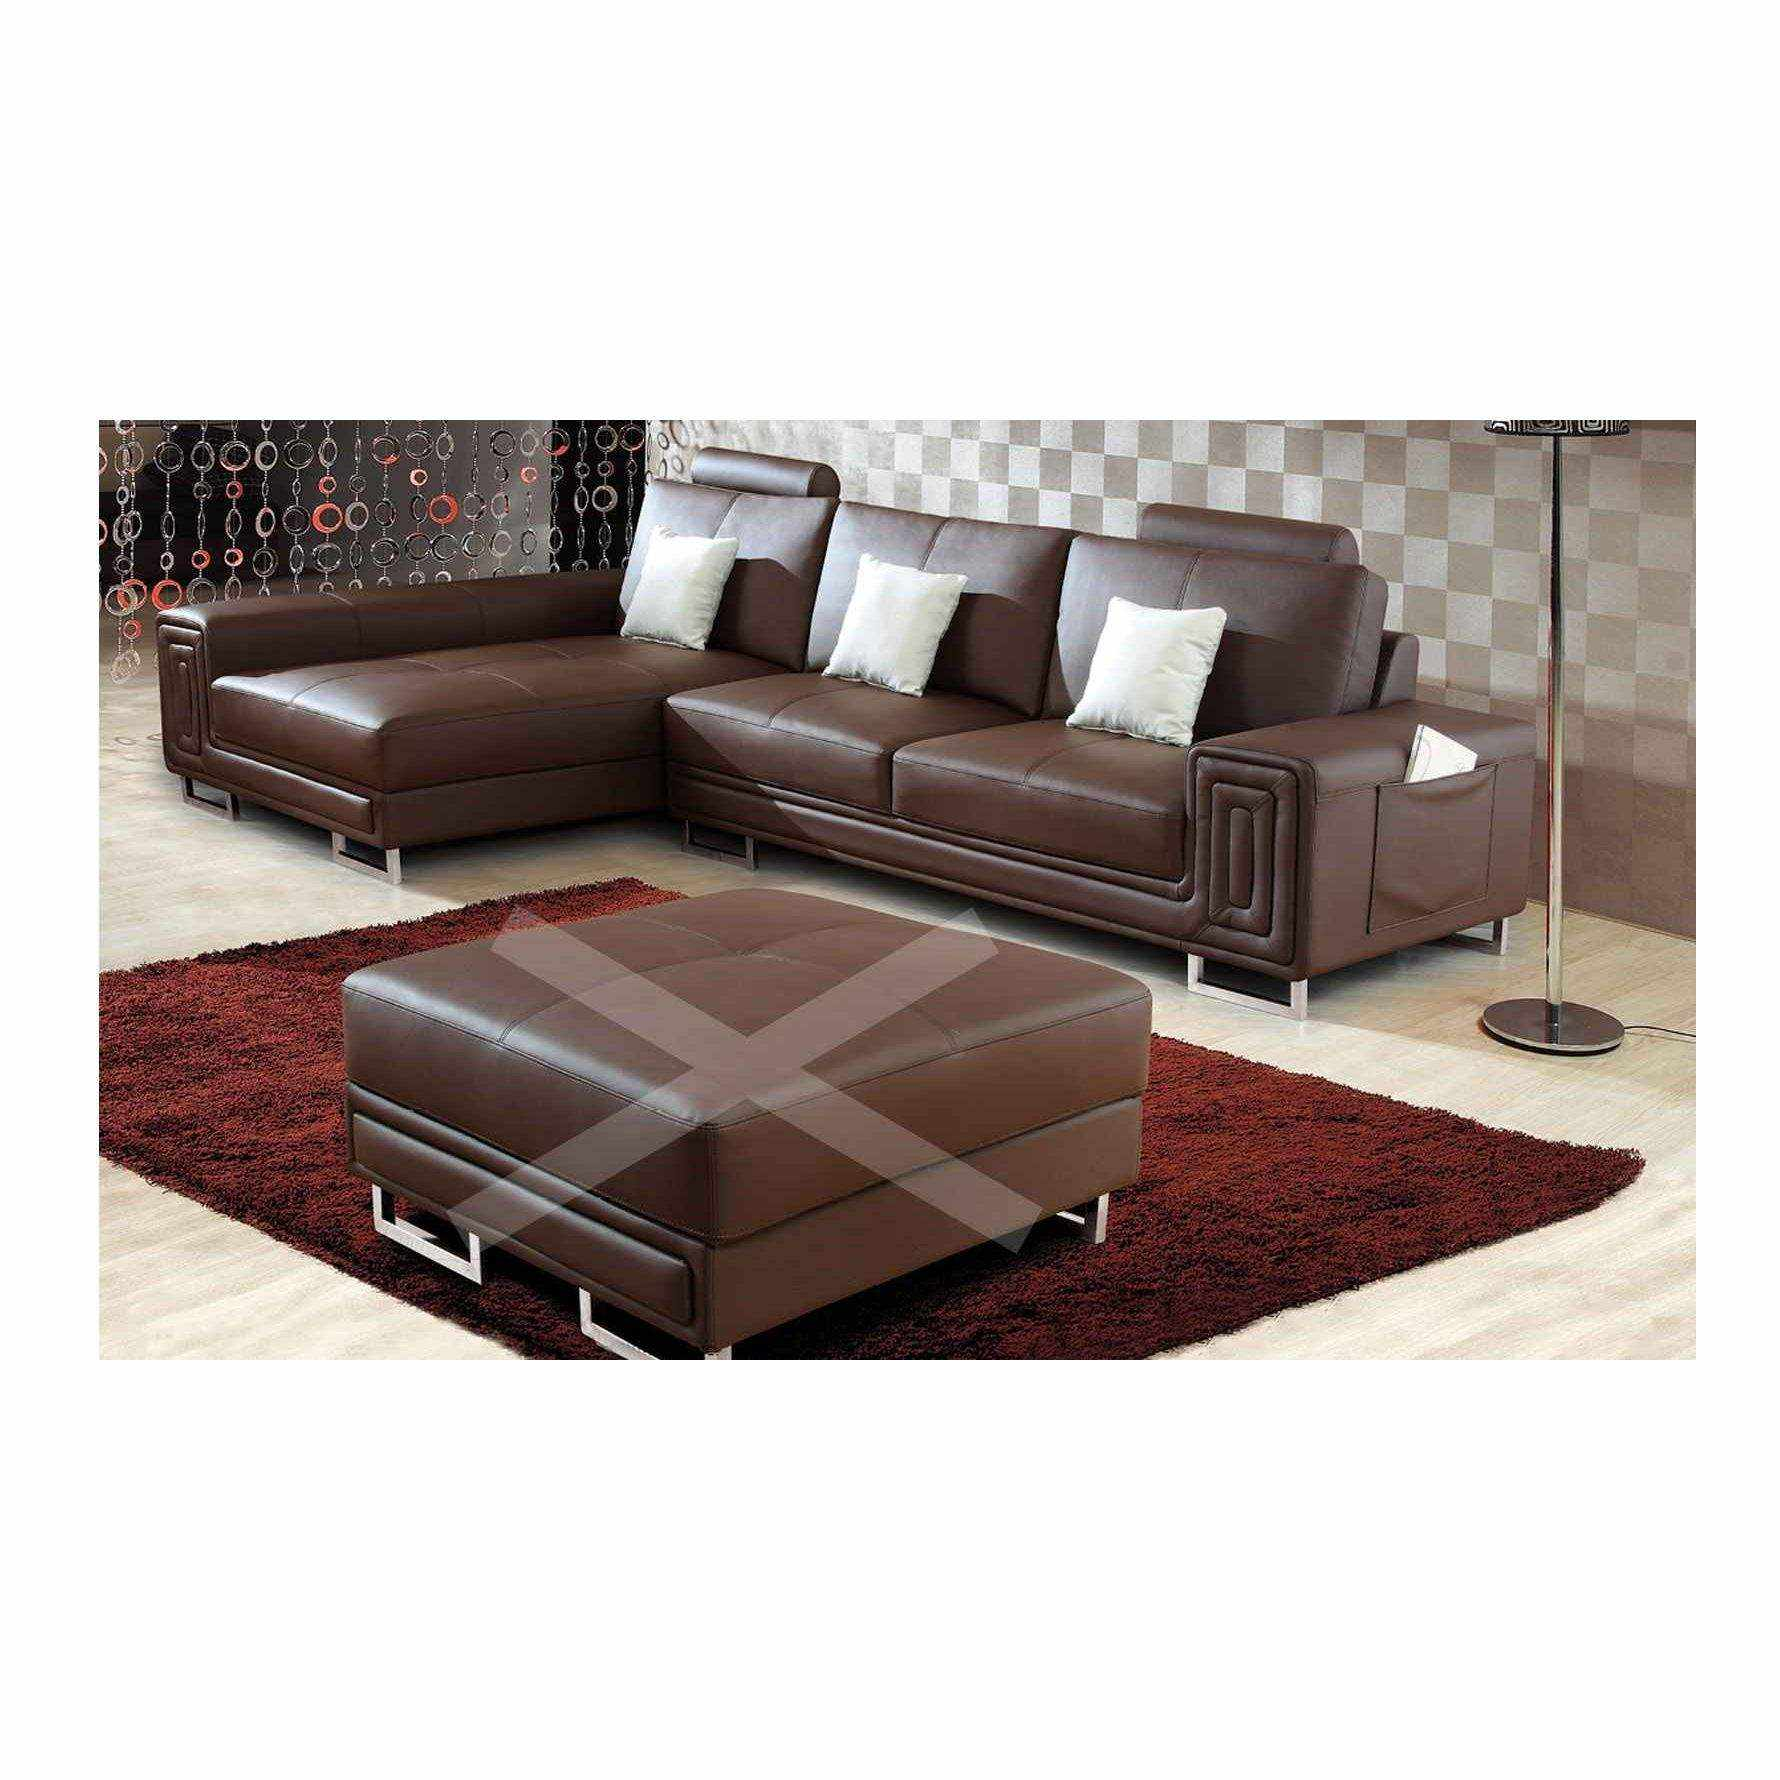 Canape Angle Cuir Deco In Paris Canape Cuir D Angle Marron Tetieres Relax